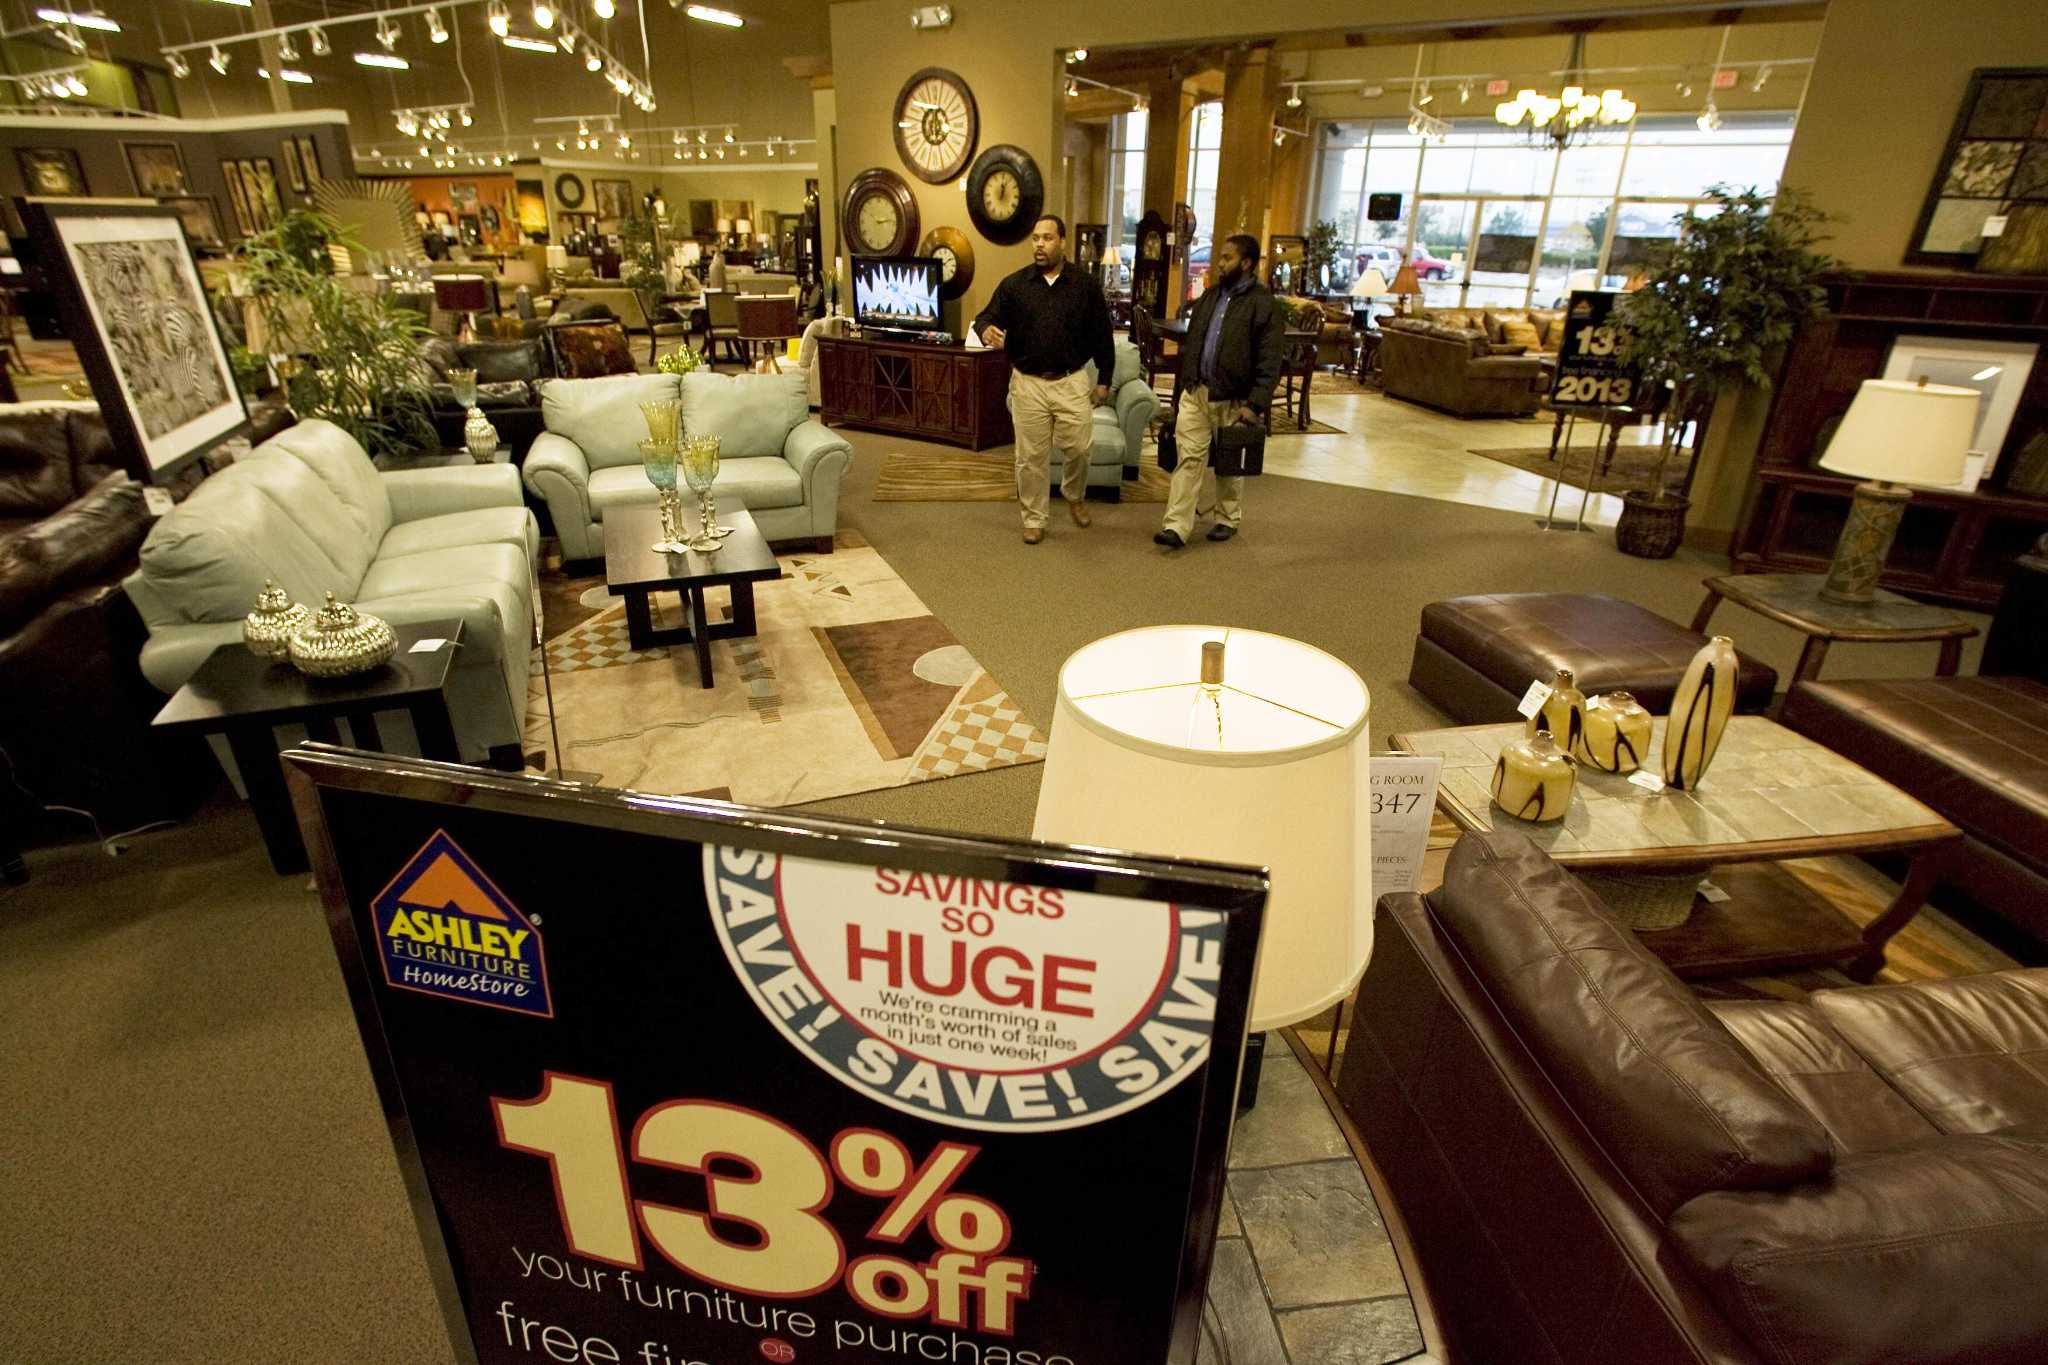 Furniture Giant To Take Staples Space In Norwalk   The Hour